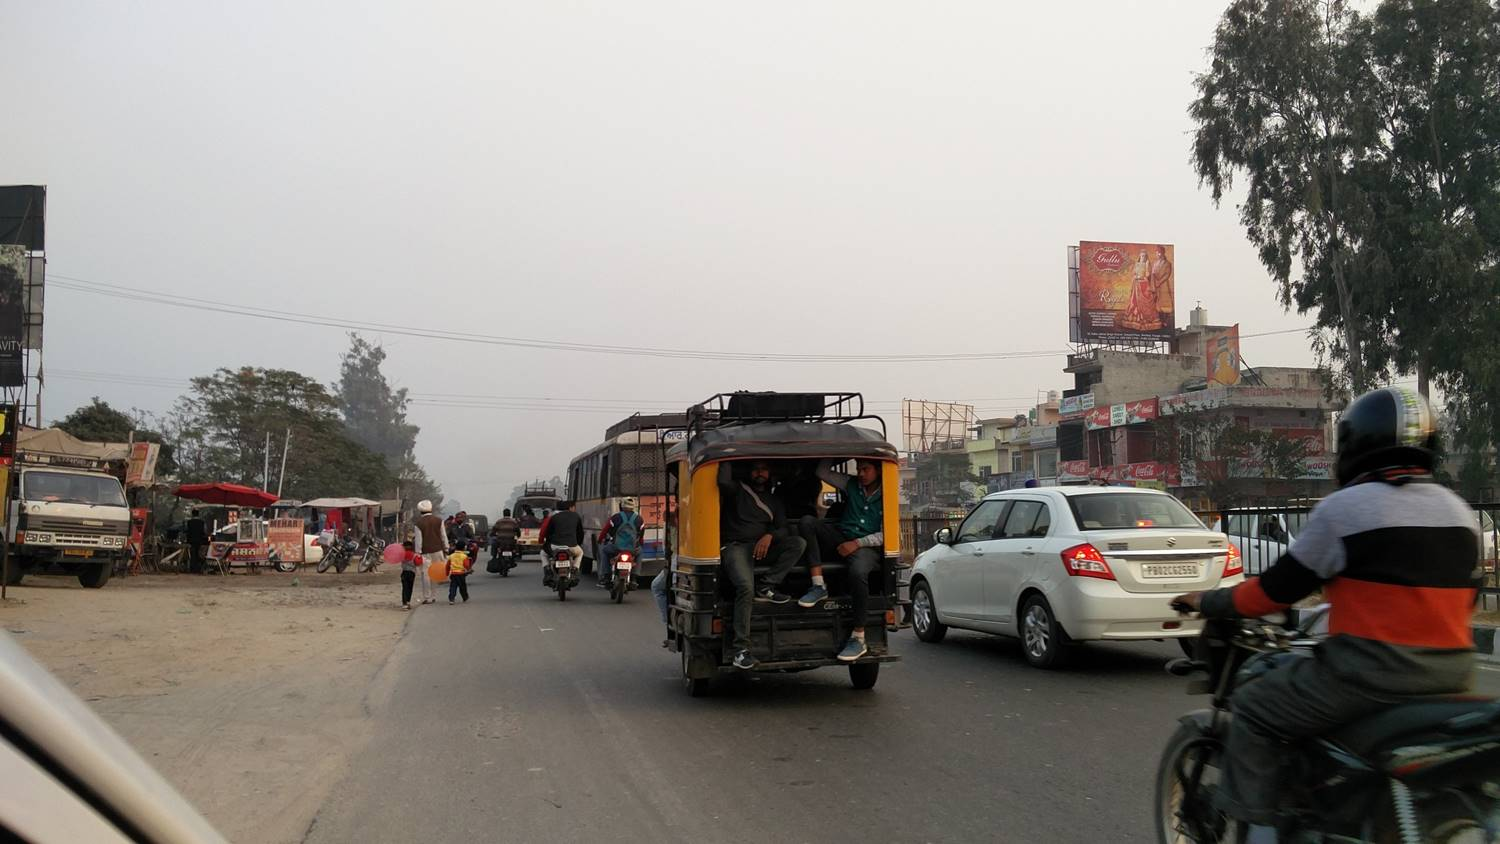 Daburji Asr Gate Outside Alpha City, Amritsar